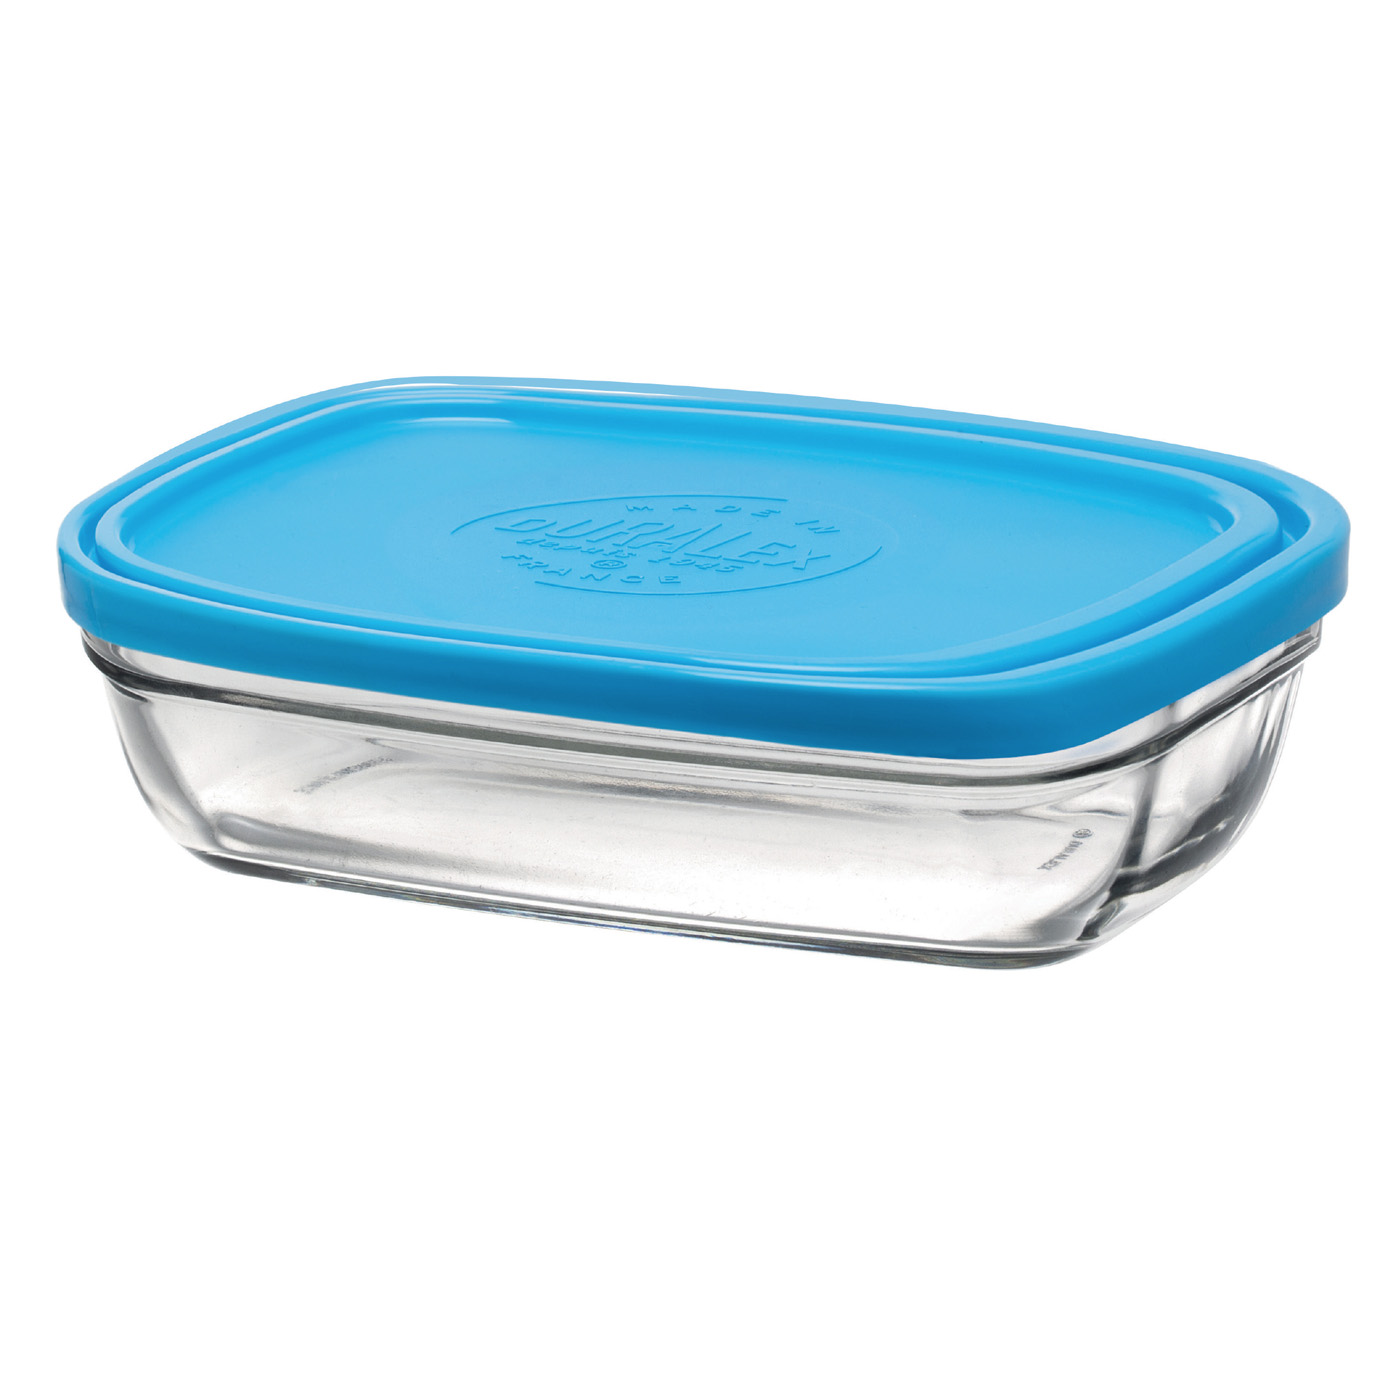 Storage Containers With Lids. IRIS 12 Quart Stack & Pull Box, 6 Pack.